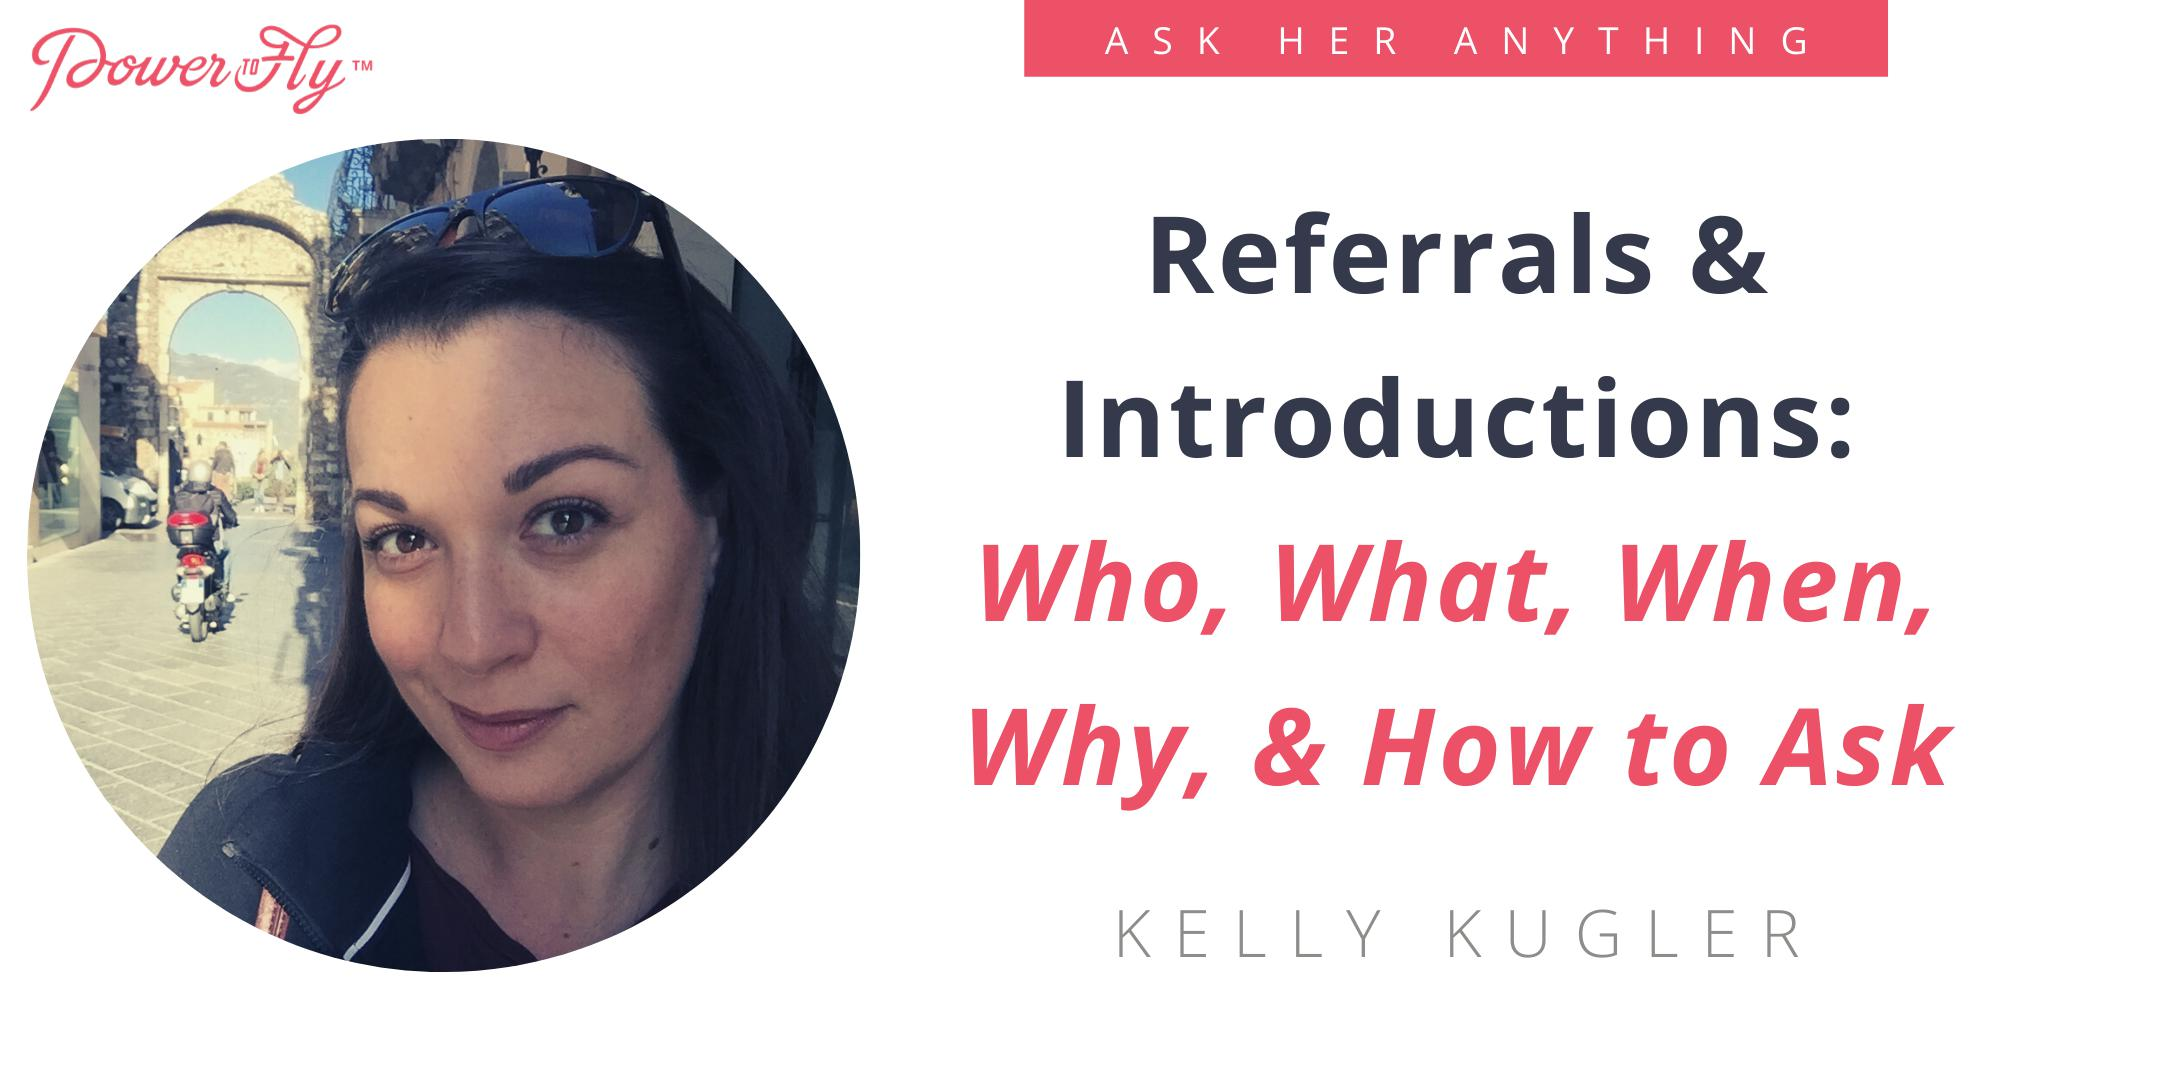 Referrals & Introductions: Who, What, When, Why, & How to Ask